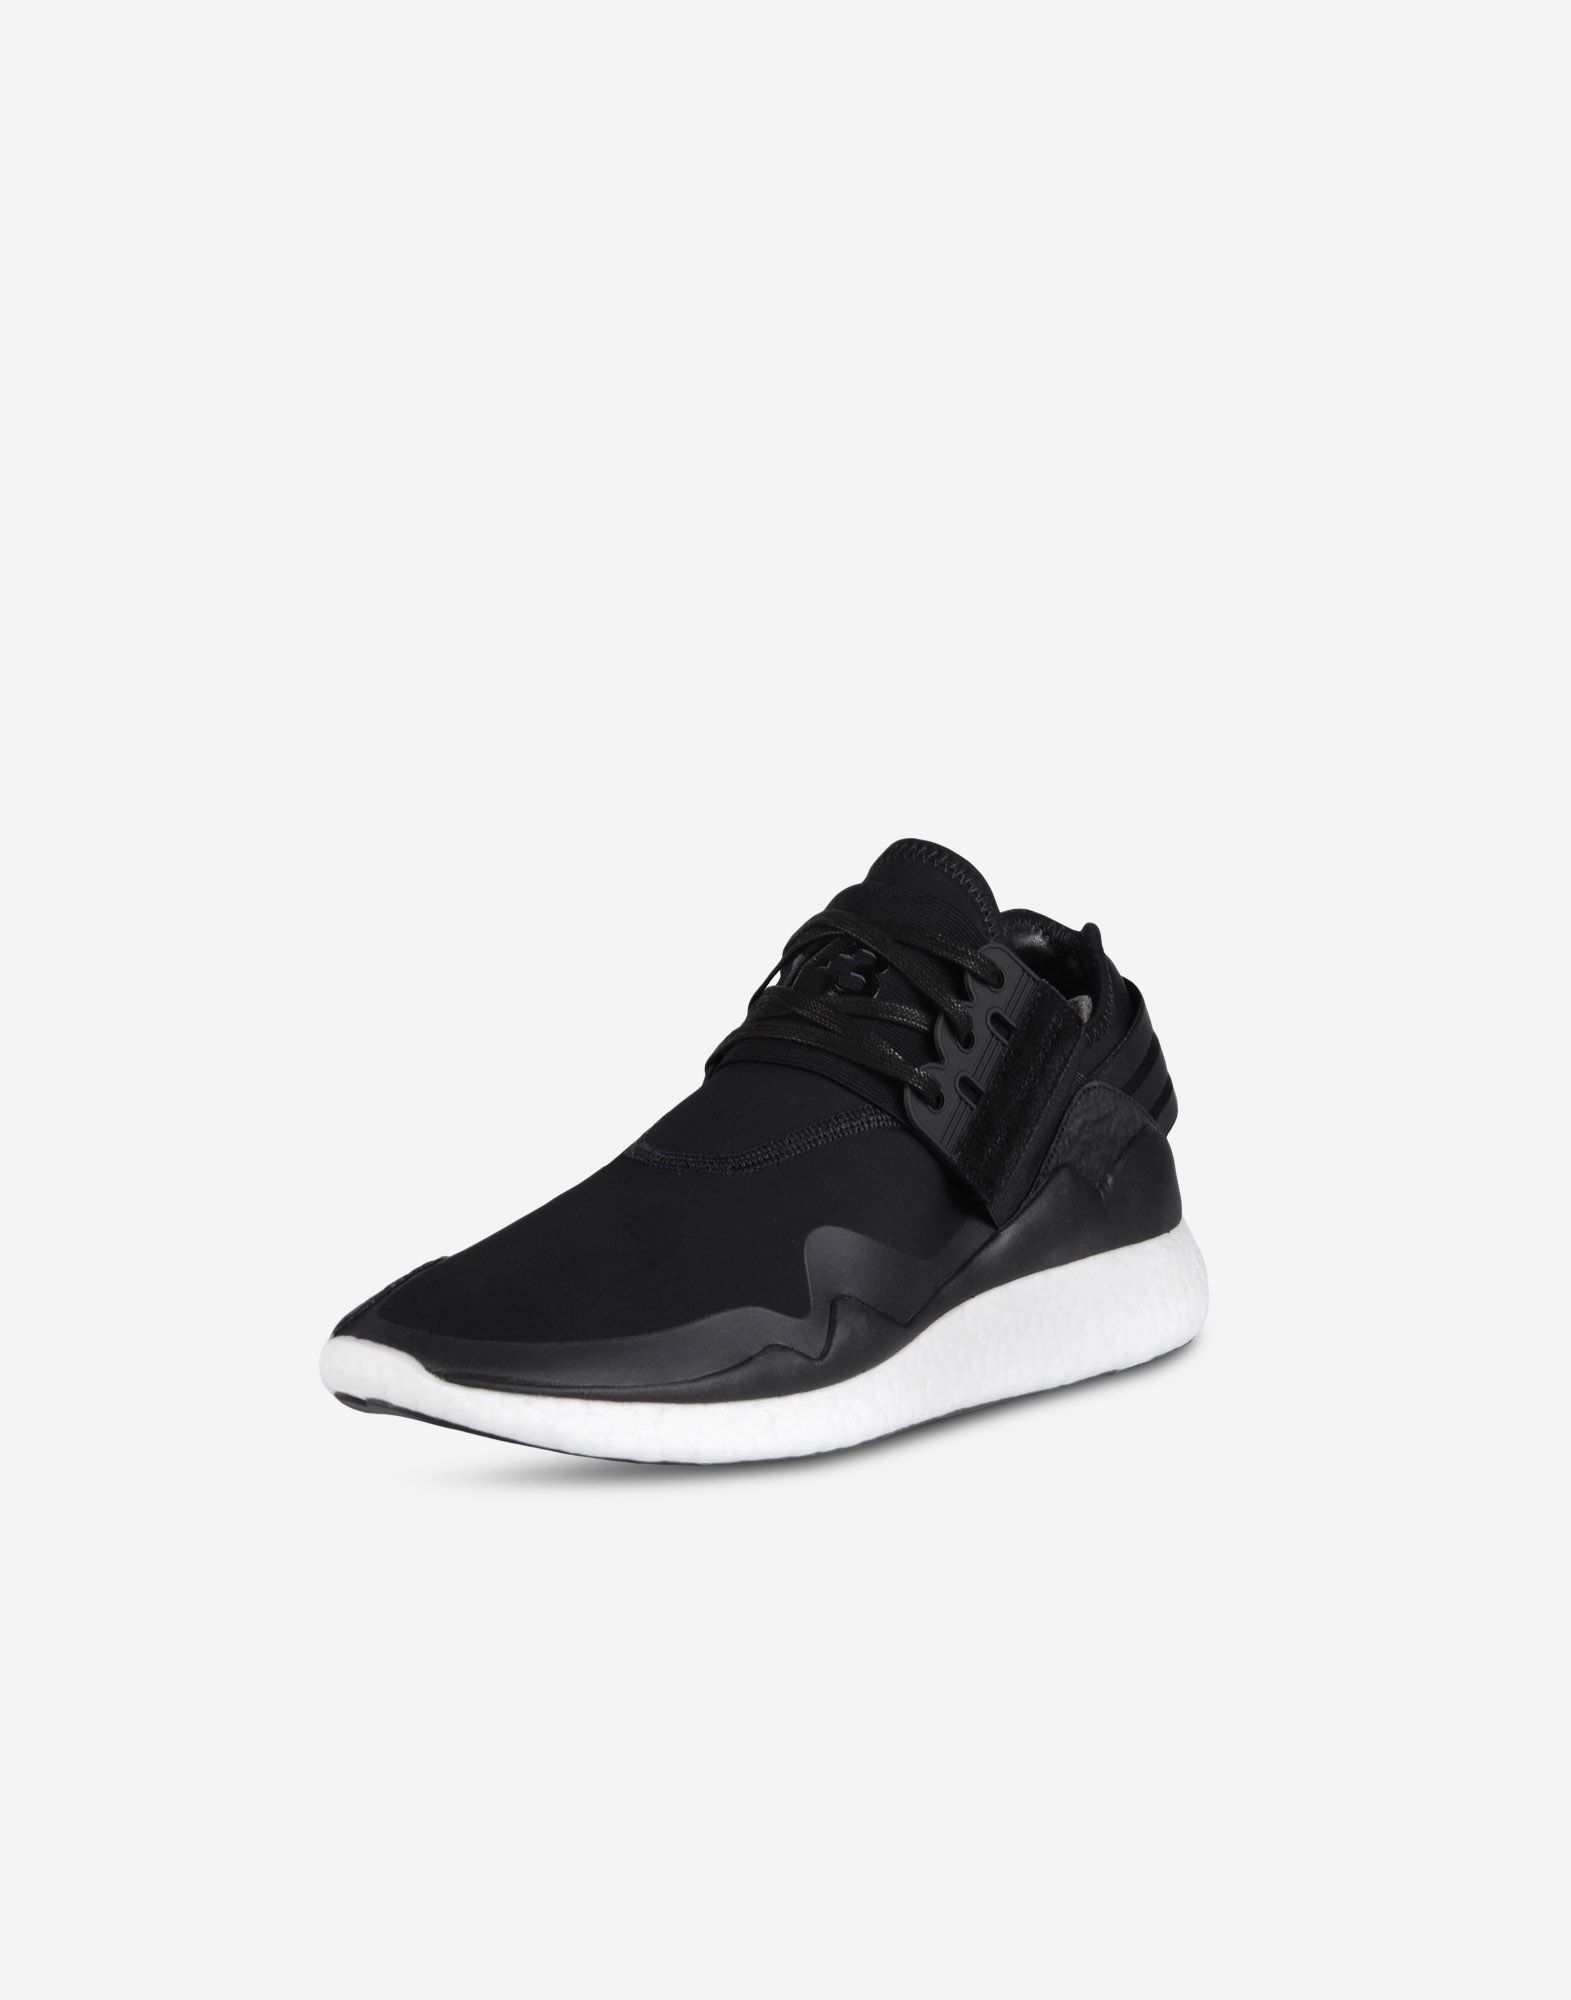 3c63d1d9dabf ... Y-3 Y-3 RETRO BOOST Sneakers Man ...